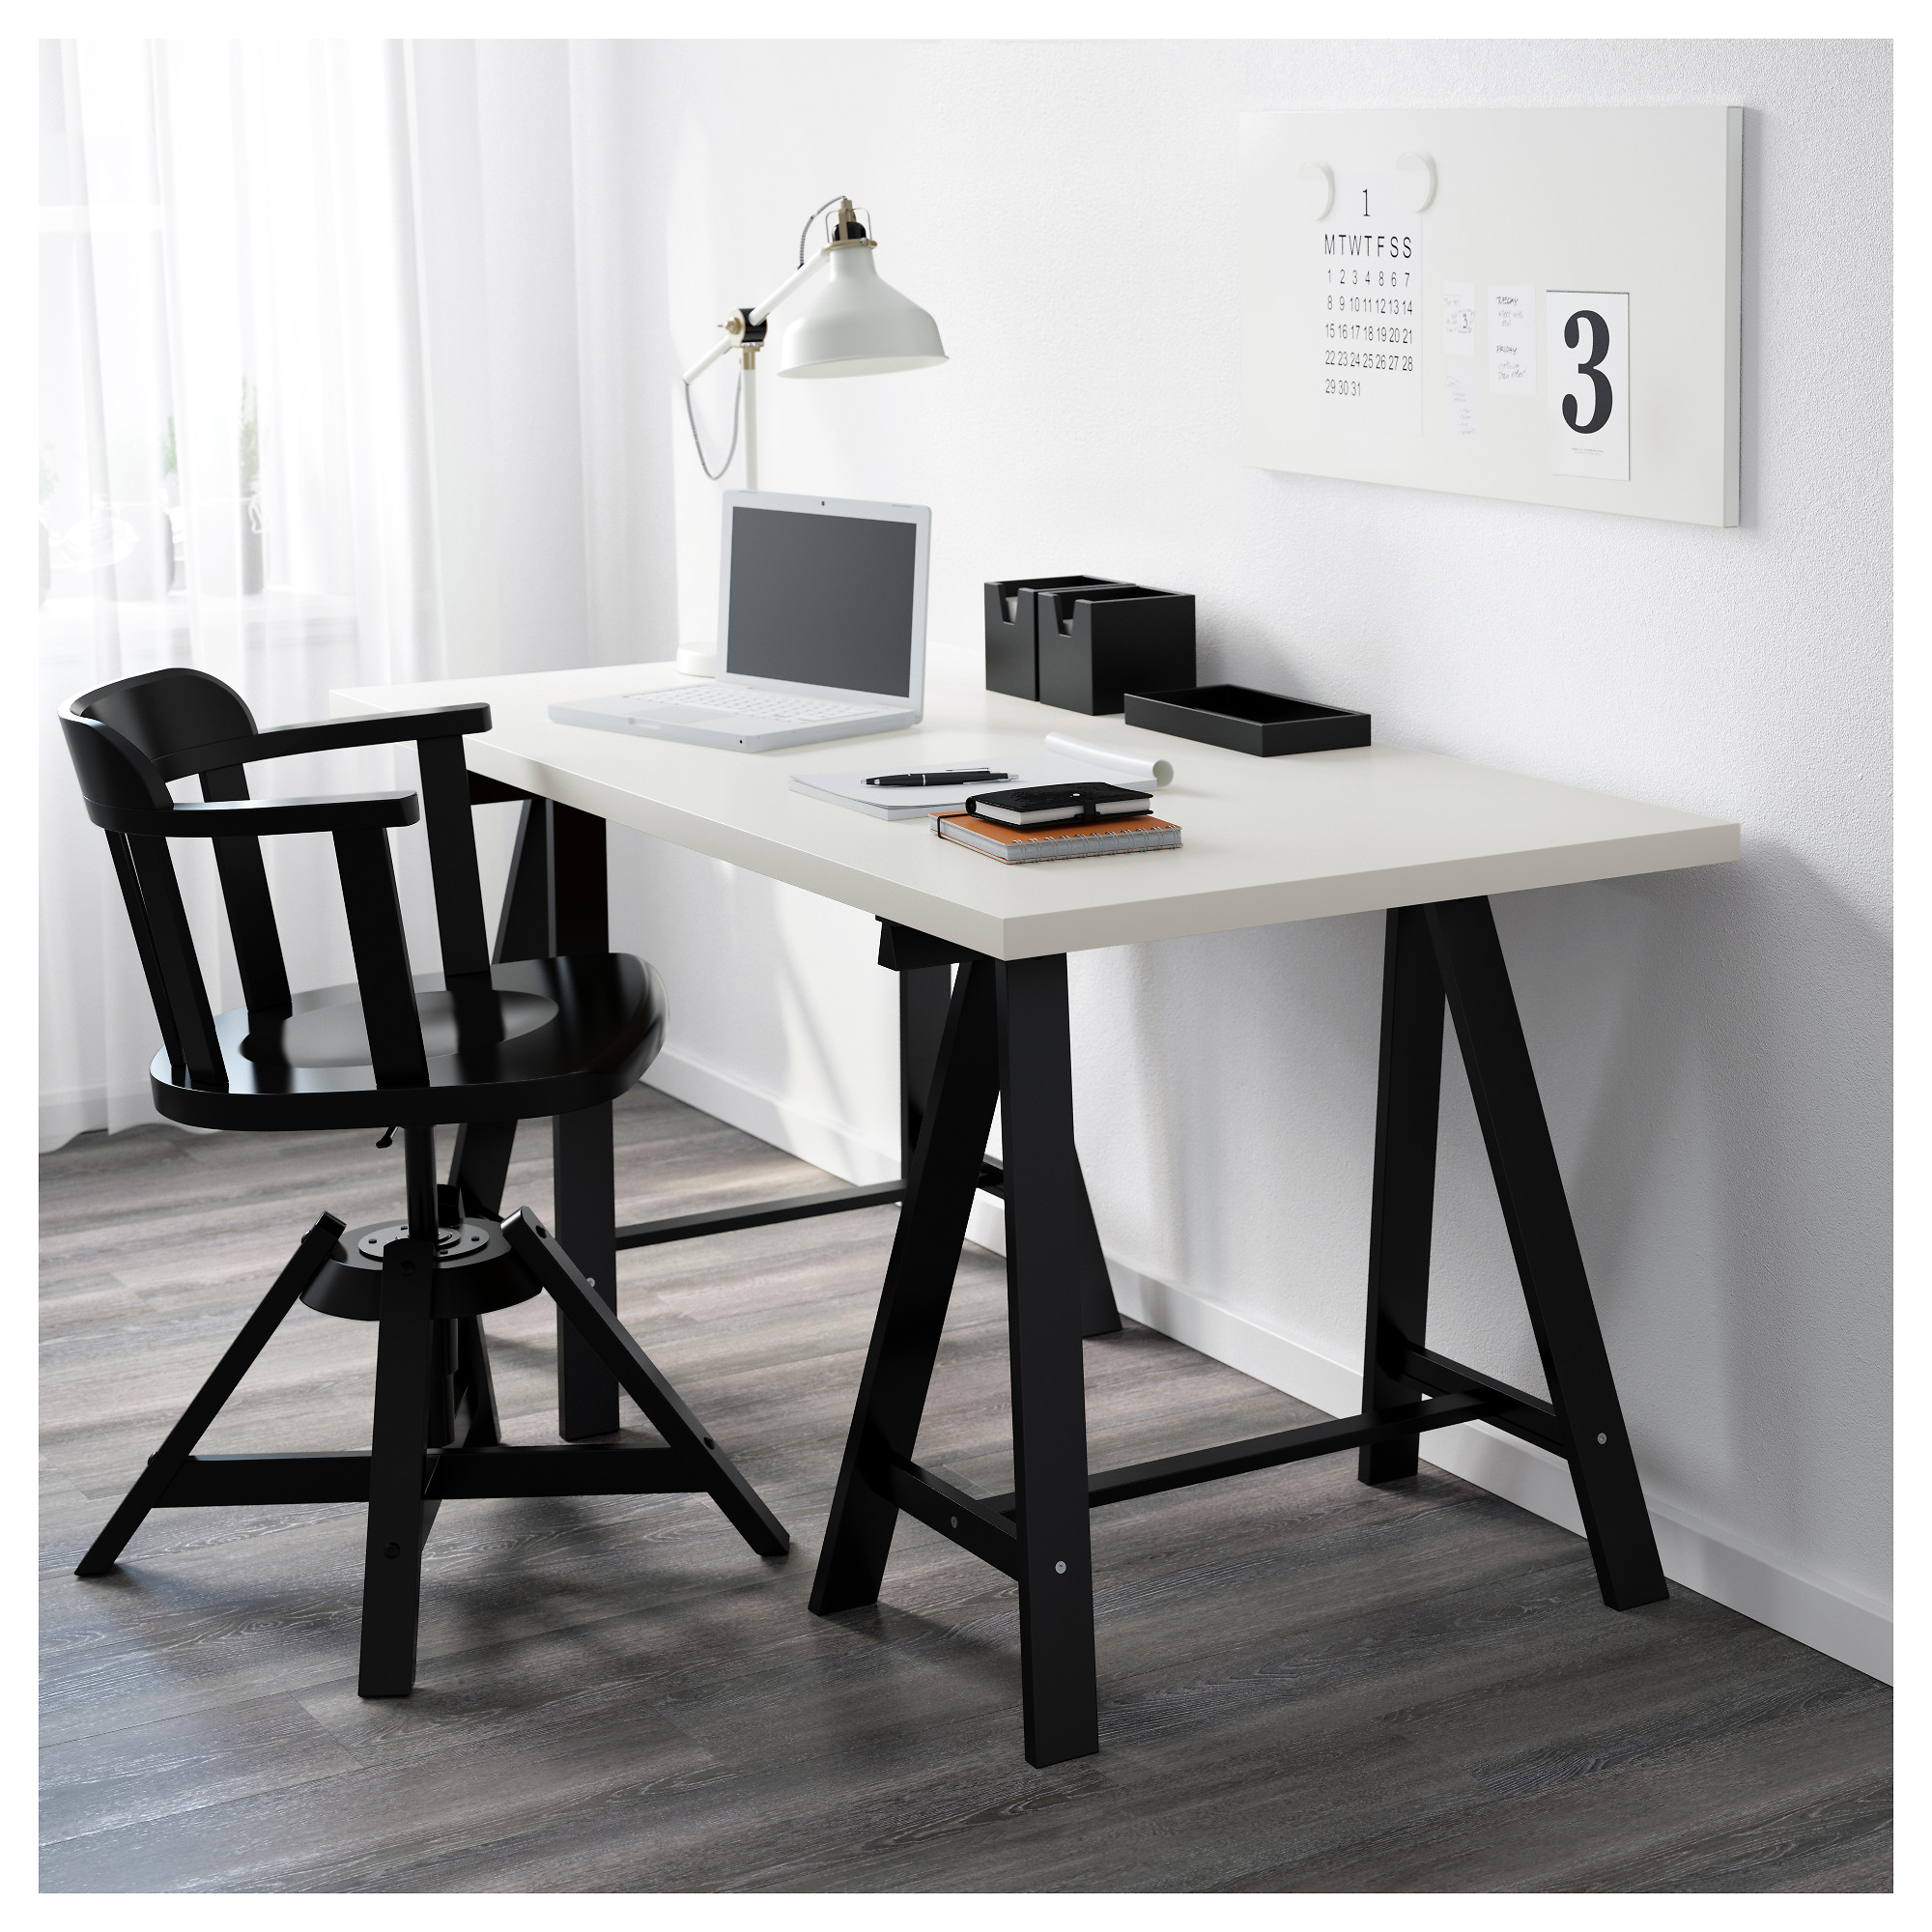 LINNMON / ODDVALD Table   White/black   IKEA